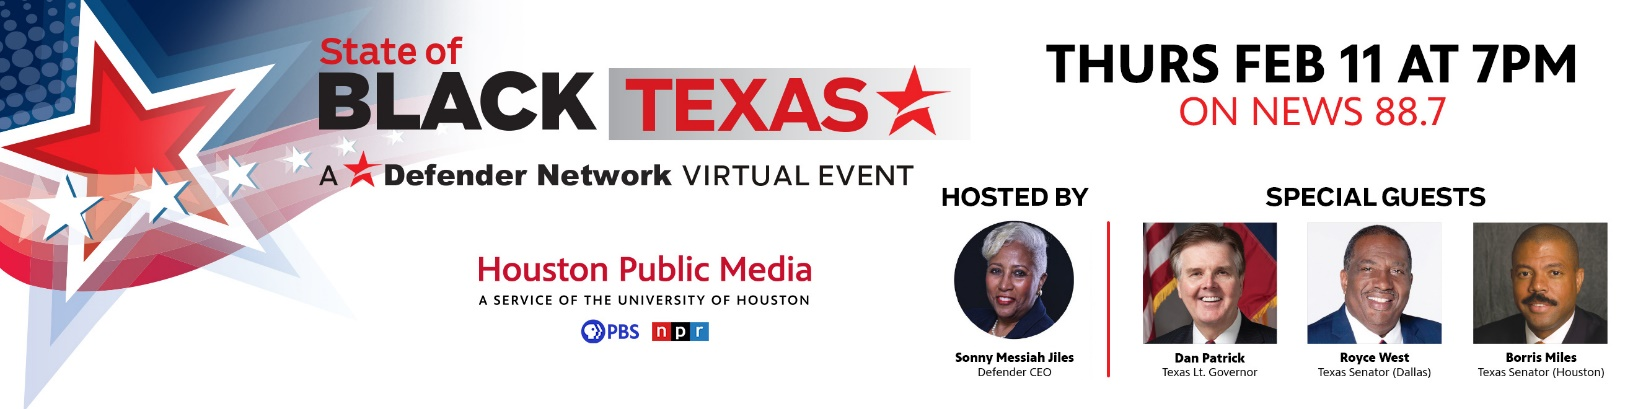 The State of BLACK TEXAS: A Defender Network Virtual Event with Houston Public Media. Thursday, February 11 at 7PM